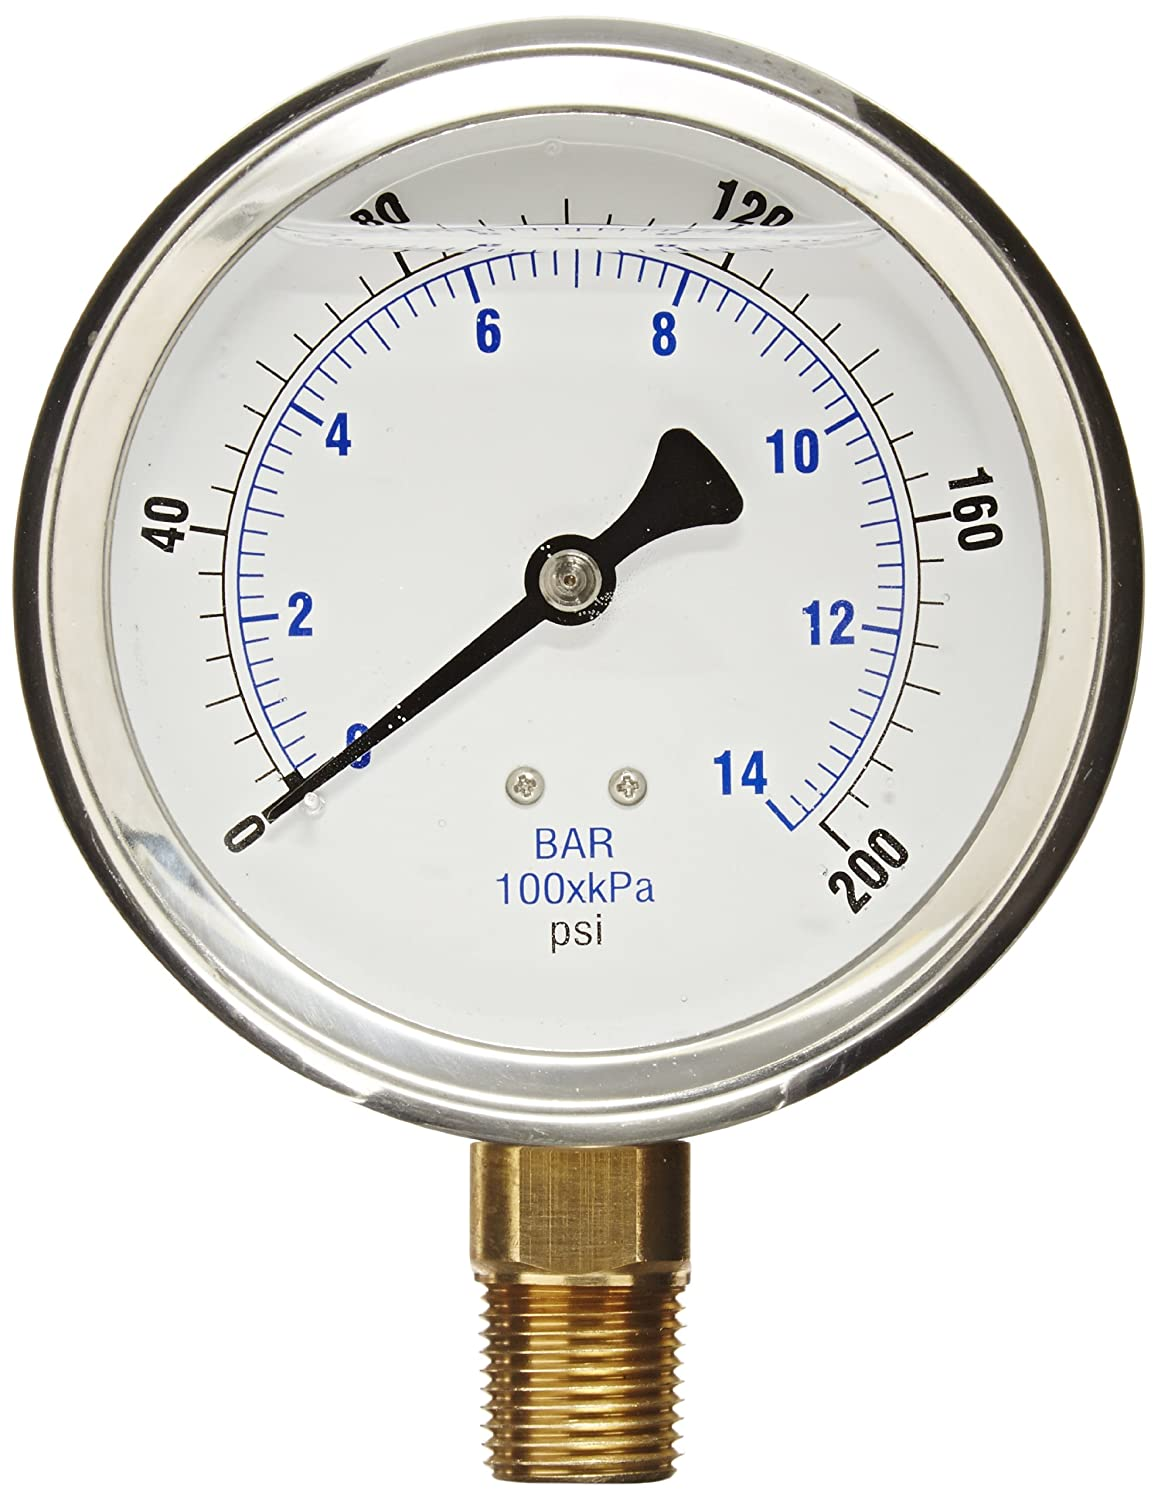 PIC Gauge 201L 402G 4 Dial 0 200 psi Range 1 2 Male NPT Connection Size Bottom Mount Glycerine Filled Pressure Gauge with a Stainless Steel Case Brass Internals Stainless Steel Bezel and Polycarbonate Lens